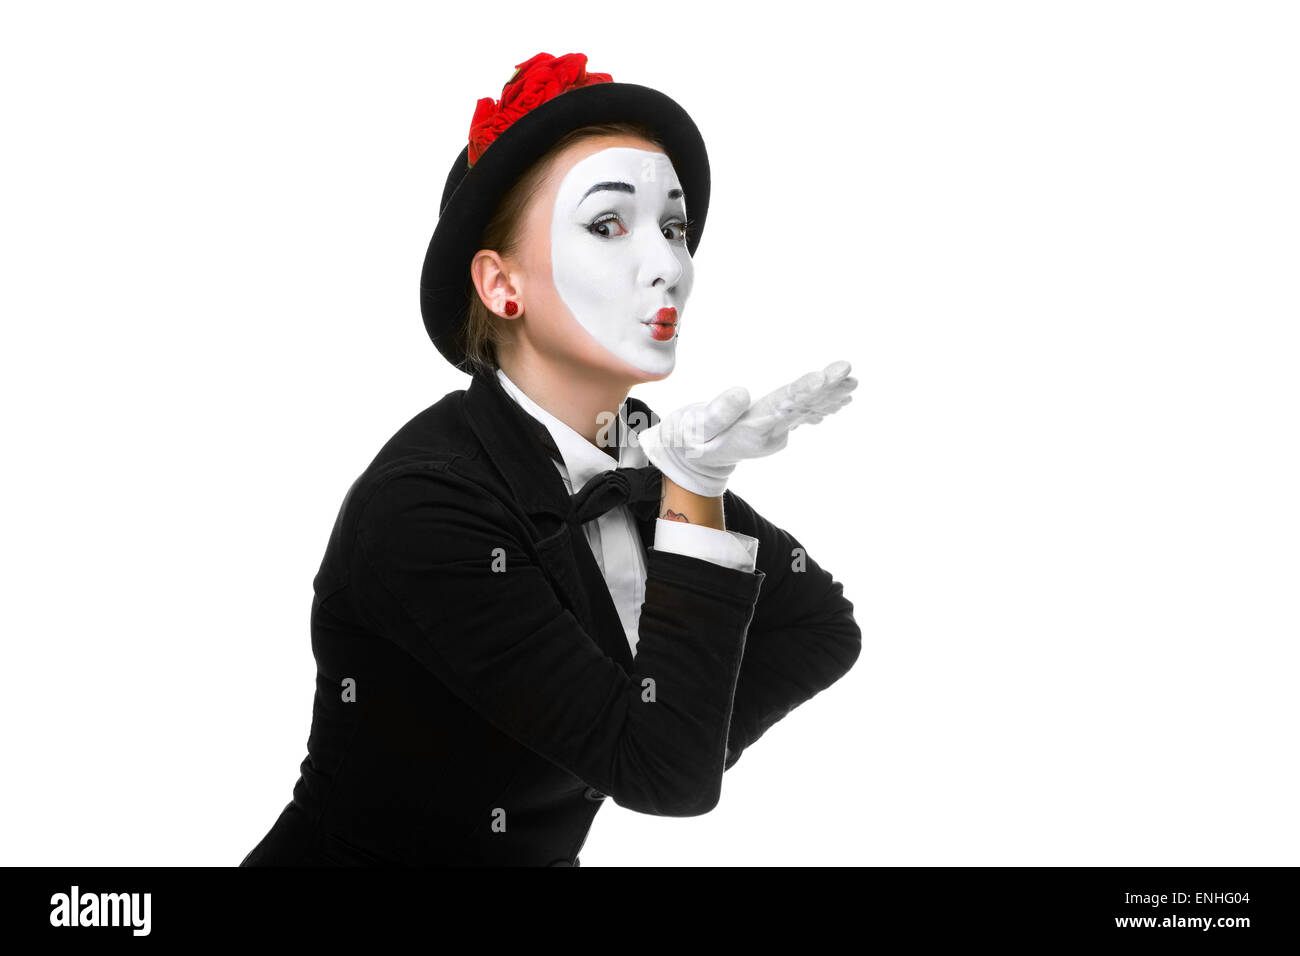 Portrait of the mime - Stock Image